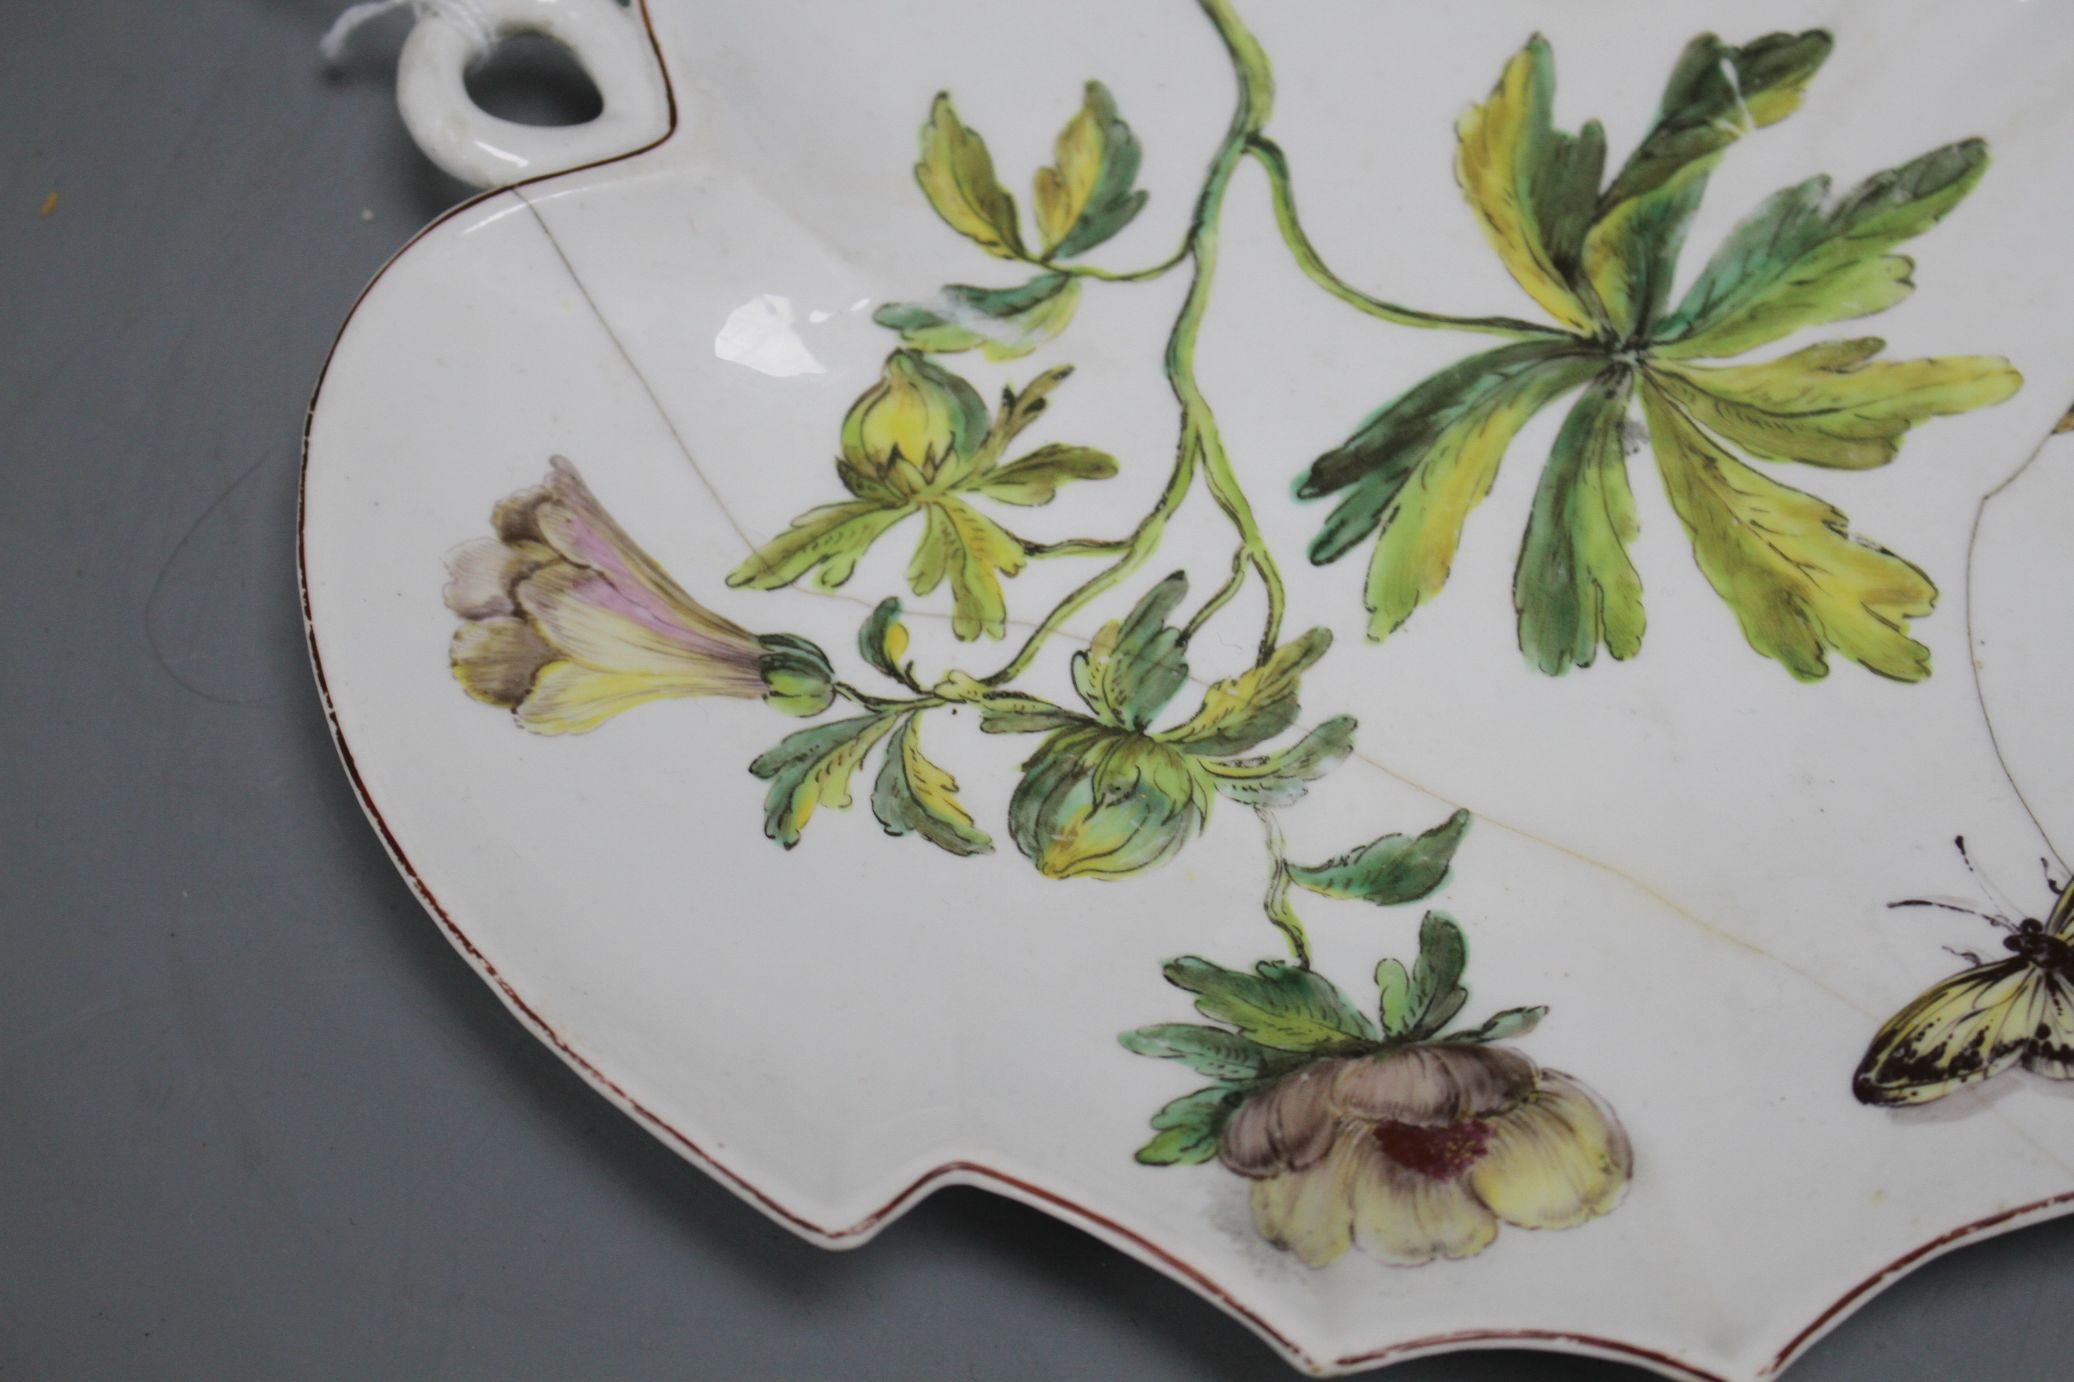 Lot 89 - A rare Chelsea red anchor 'Hans Sloane' botanical dessert dish, c.1755, length 22.5cm Condition: The